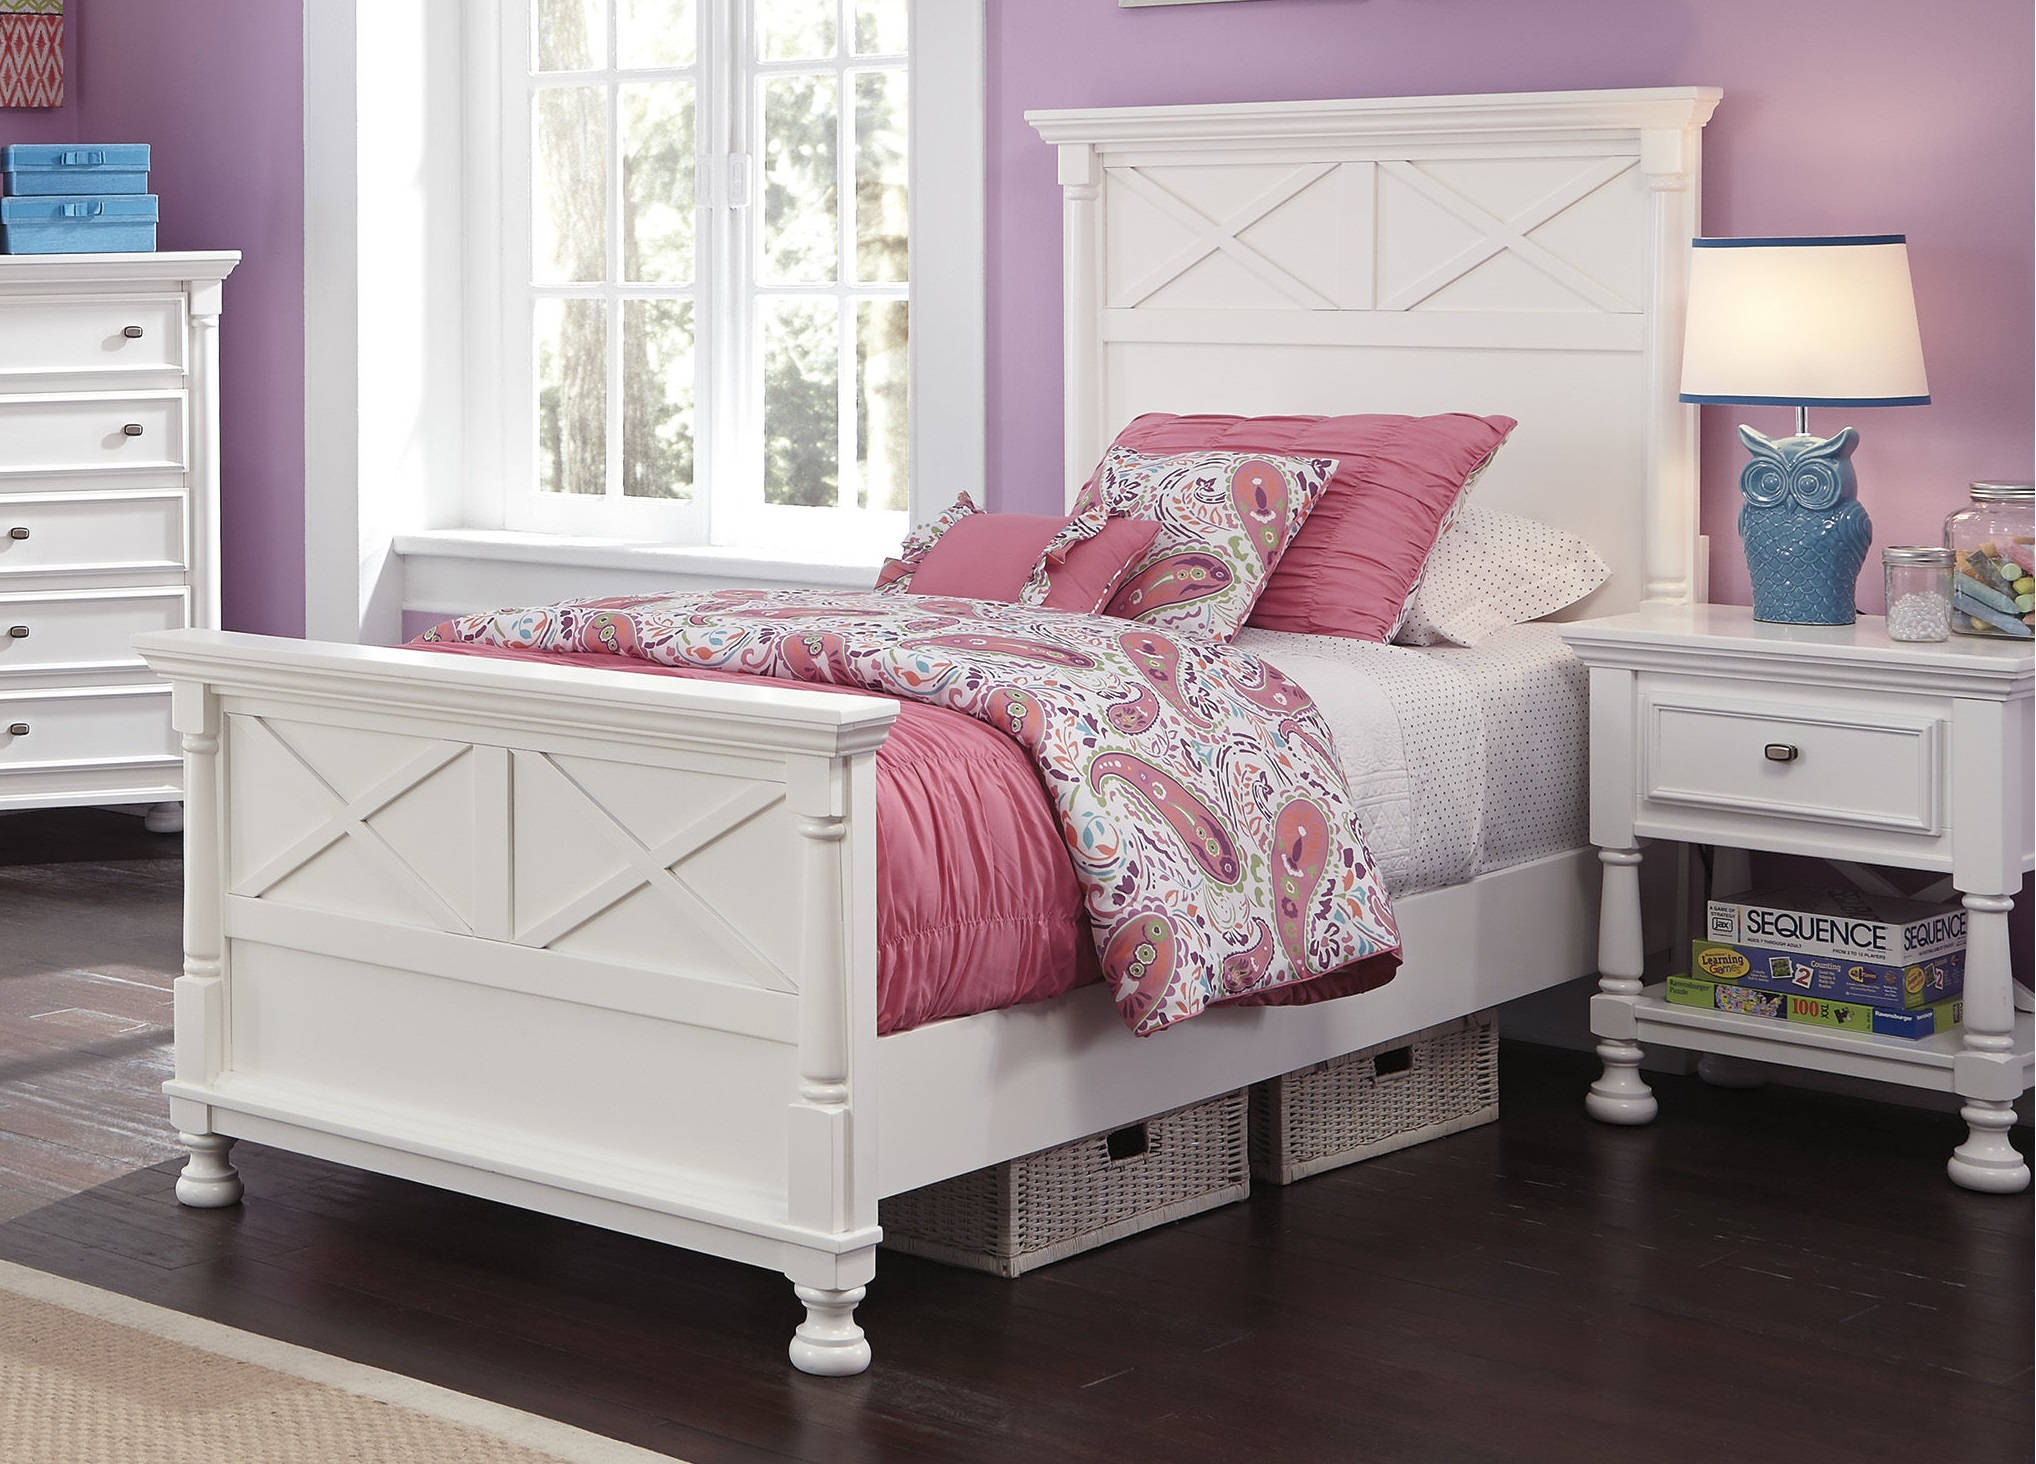 Ashley Furniture Kaslyn White 2pc Kids Bedroom Set with Twin Panel Bed